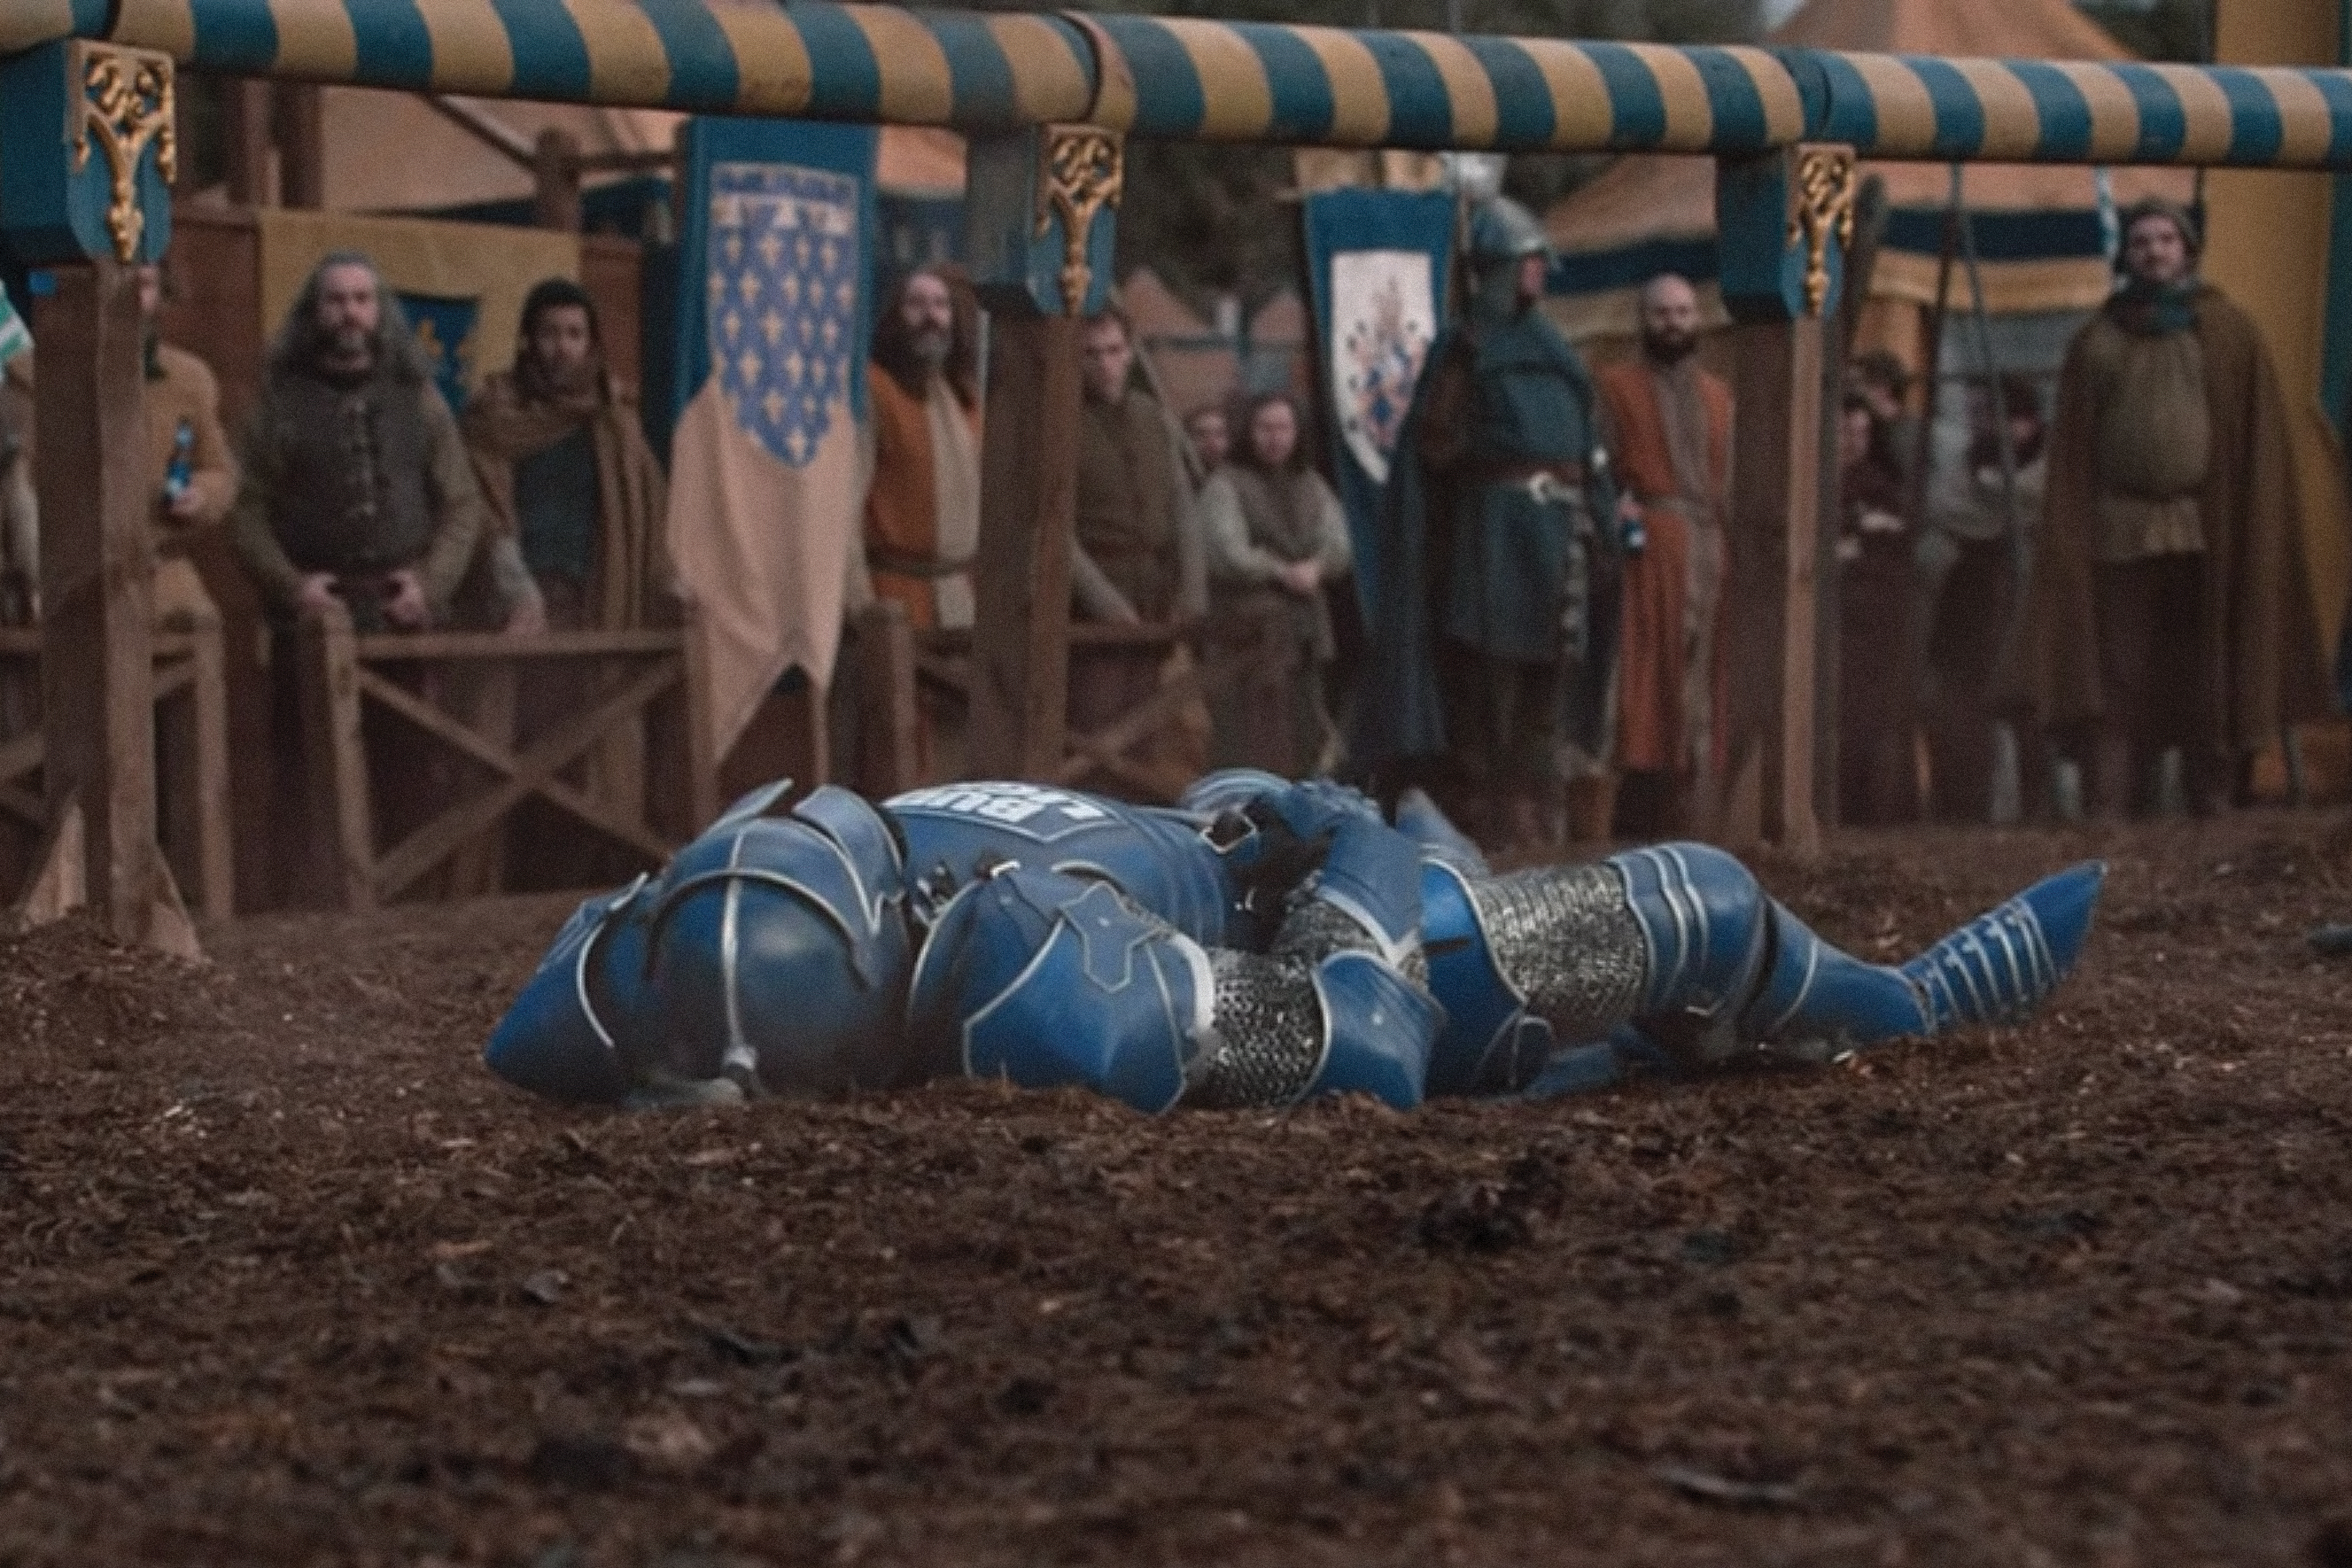 Bud Light AB Anheuser Busch InBev Dilly Dilly Bud Knight medieval renaissance campaign ad advertising marketing Wieden & Kennedy New York W&K creative agency Bud Light Seltzer new product Seltzer PA Penn Pennsylvania VP Andy Goeler hard spiked seltzer Super Bowl LIV 2020